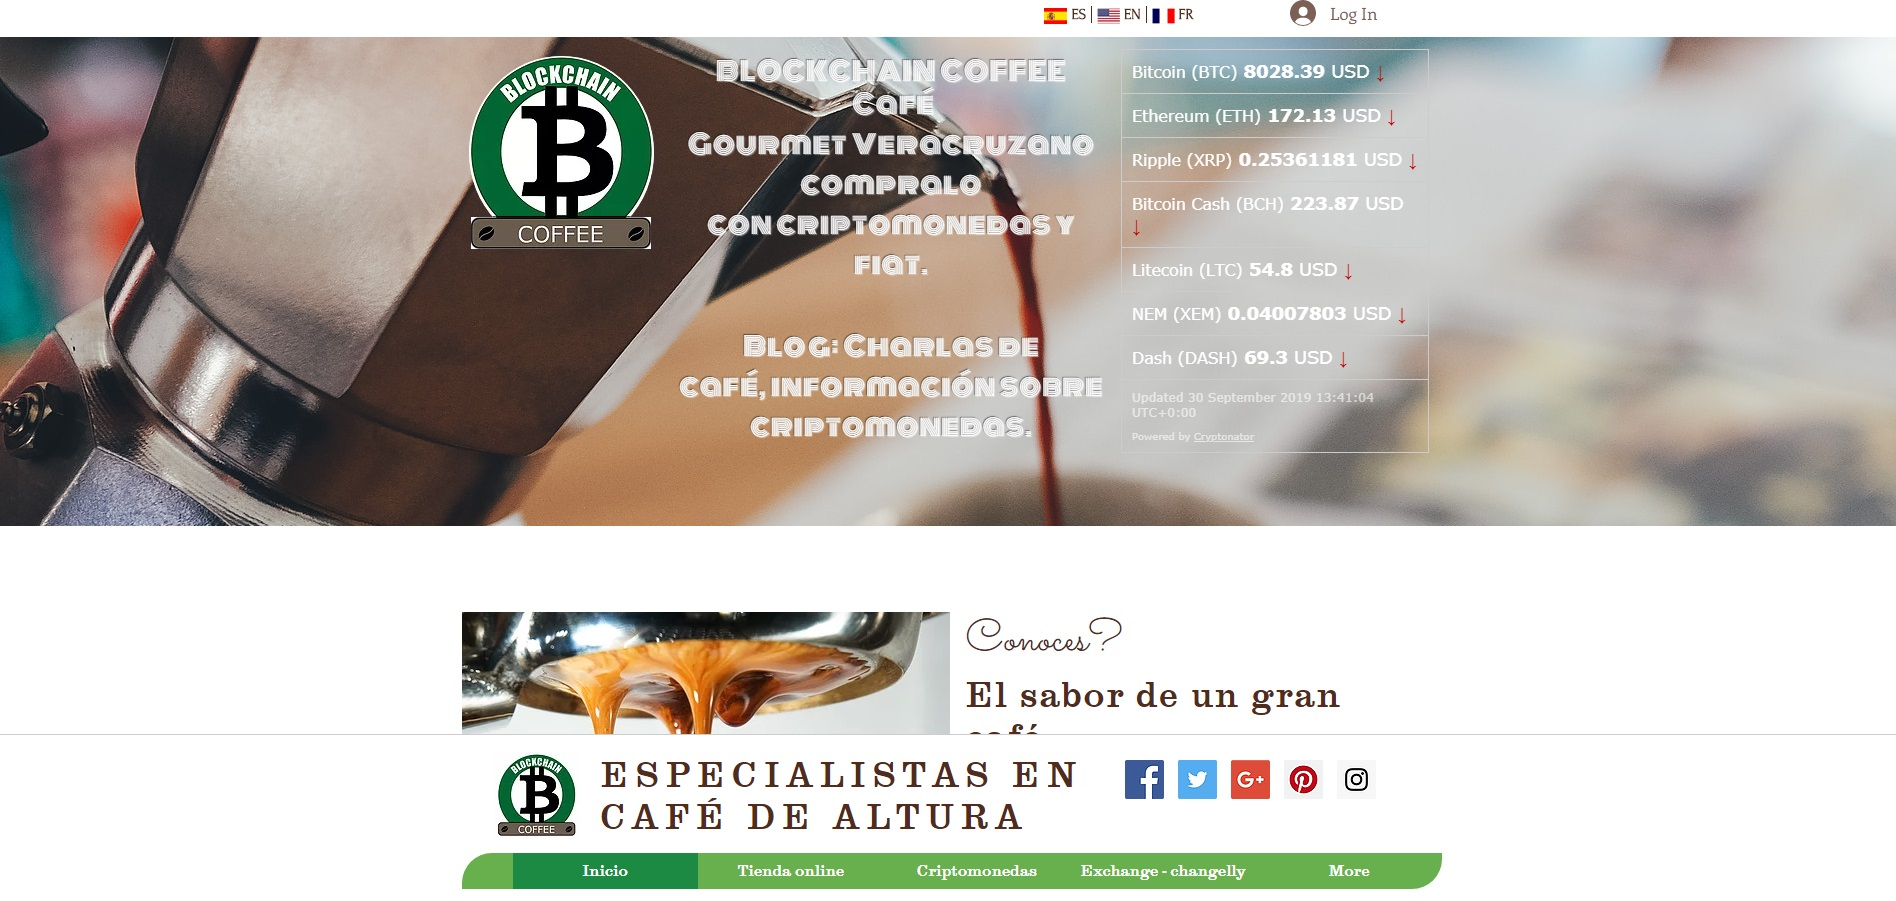 blockchain-coffee_1555321172.jpg